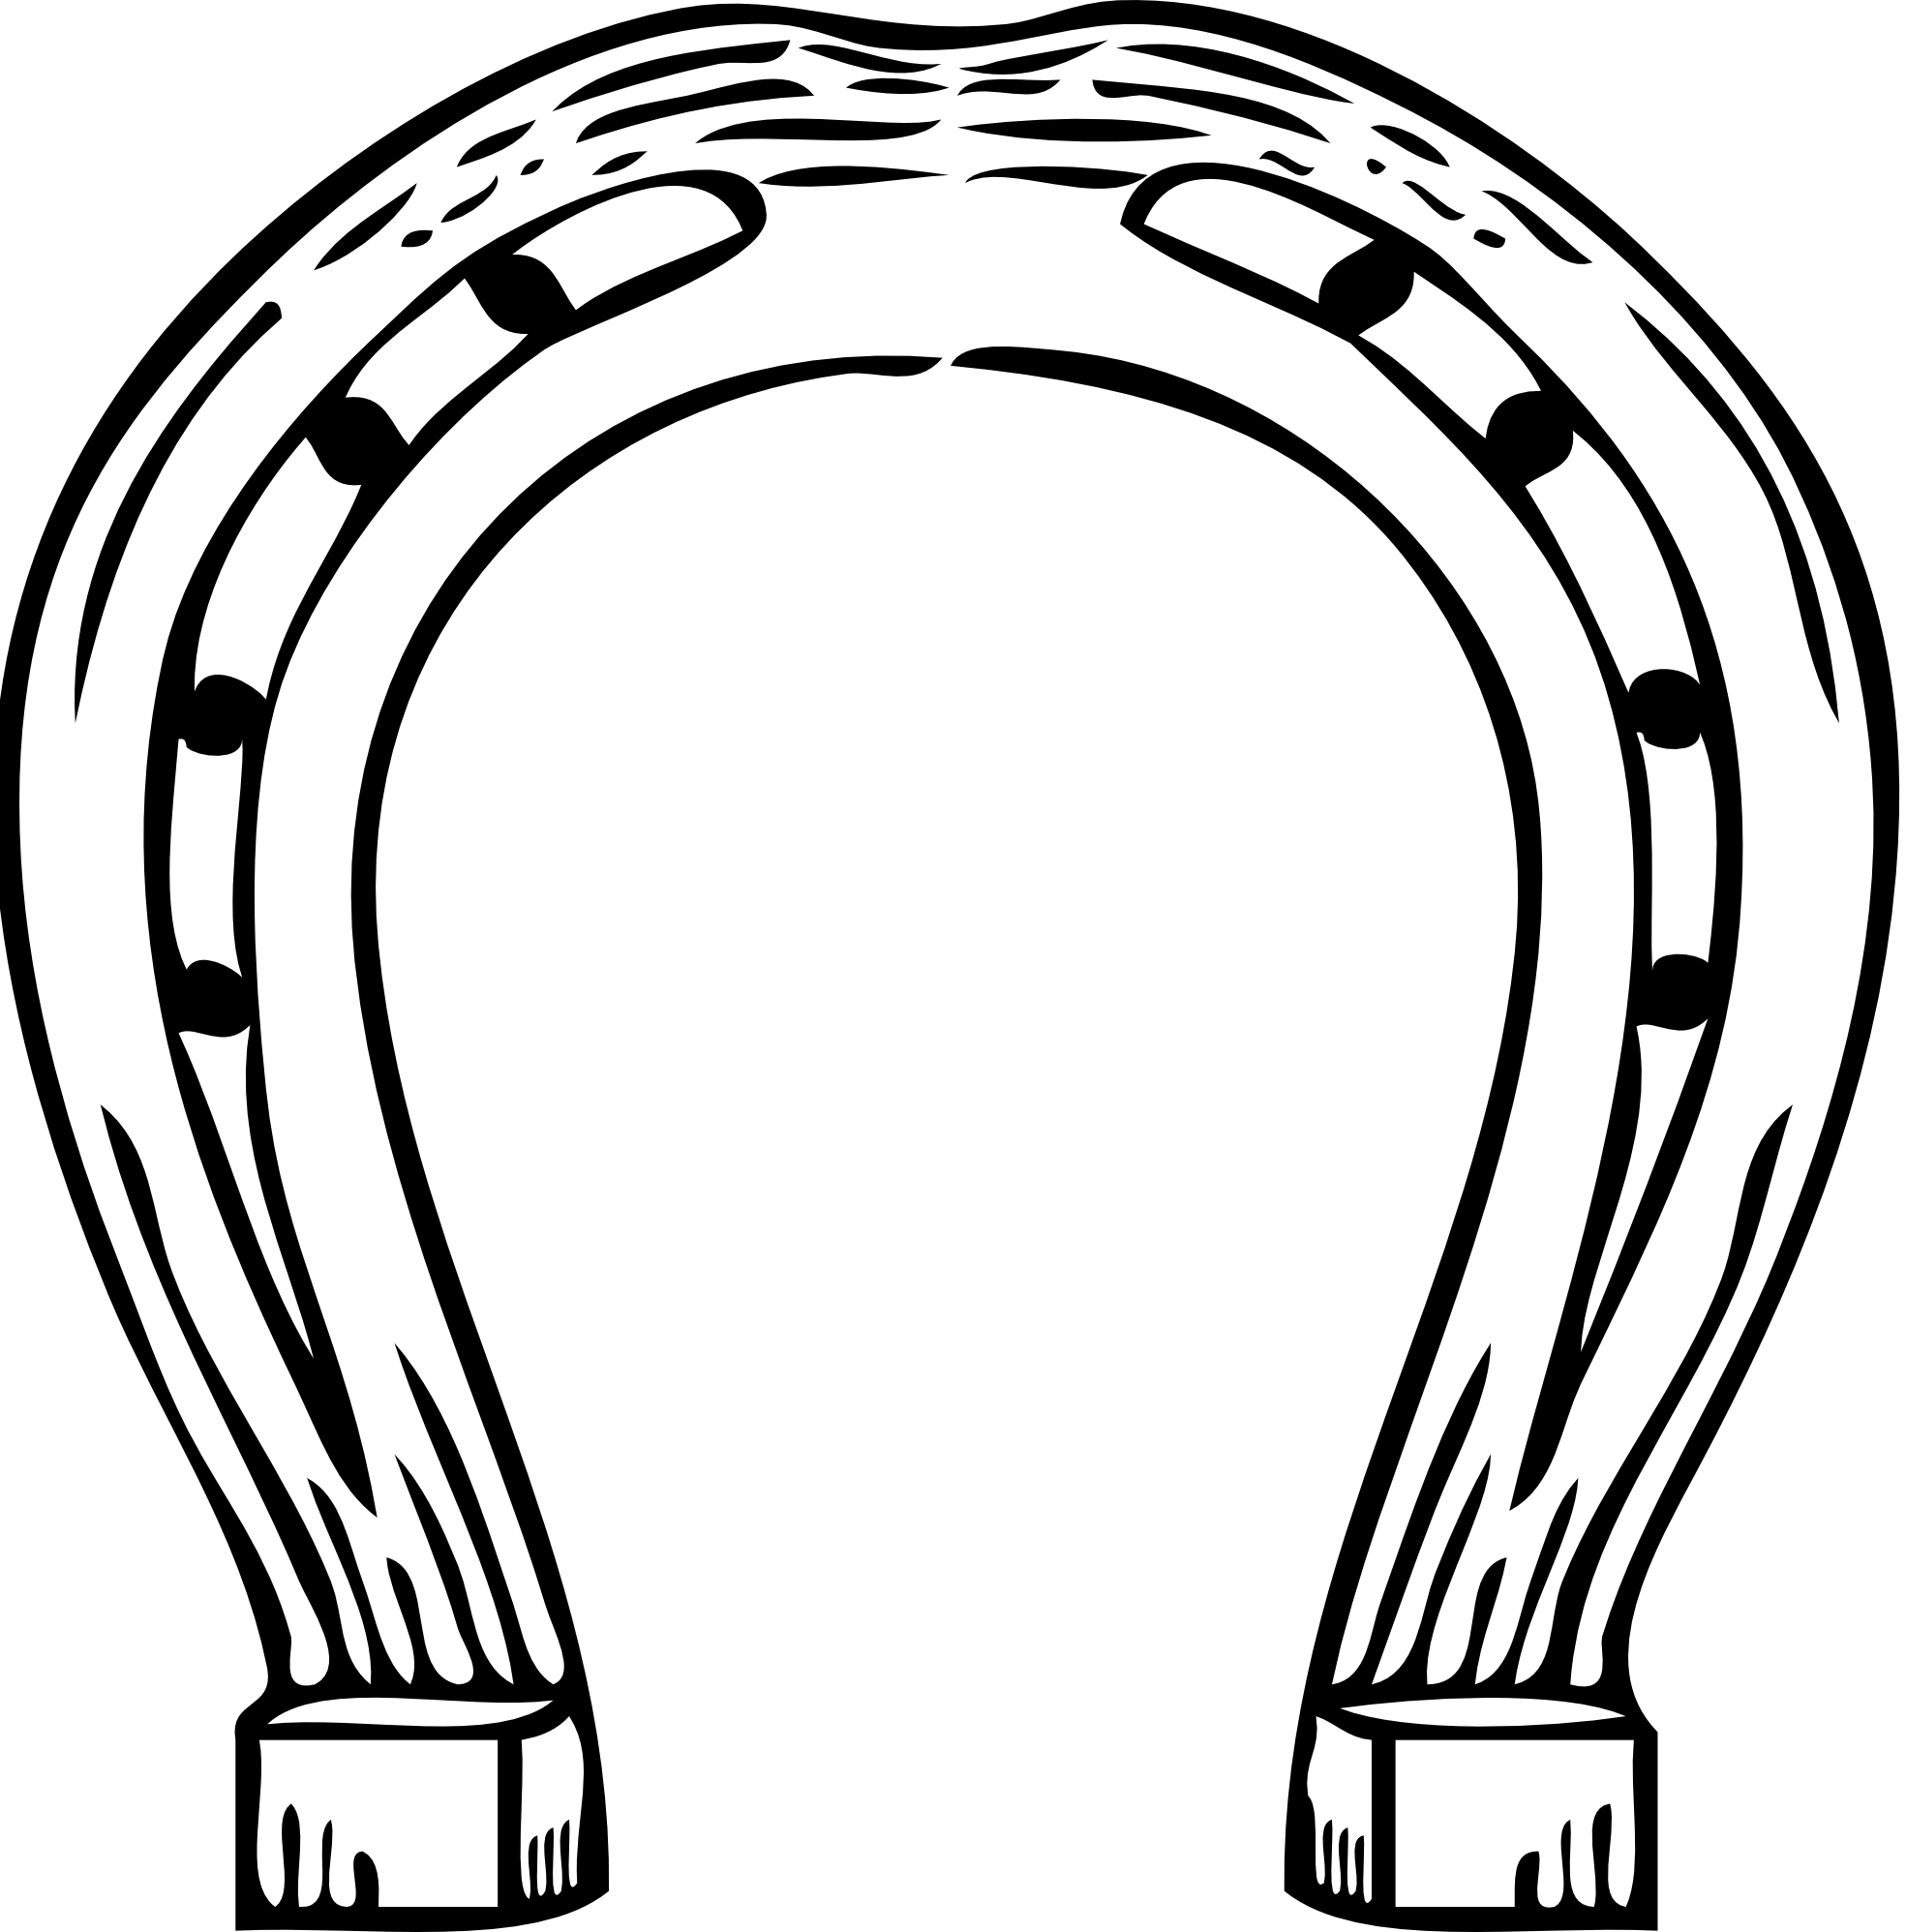 Horse Shoe Clipart Black And White.